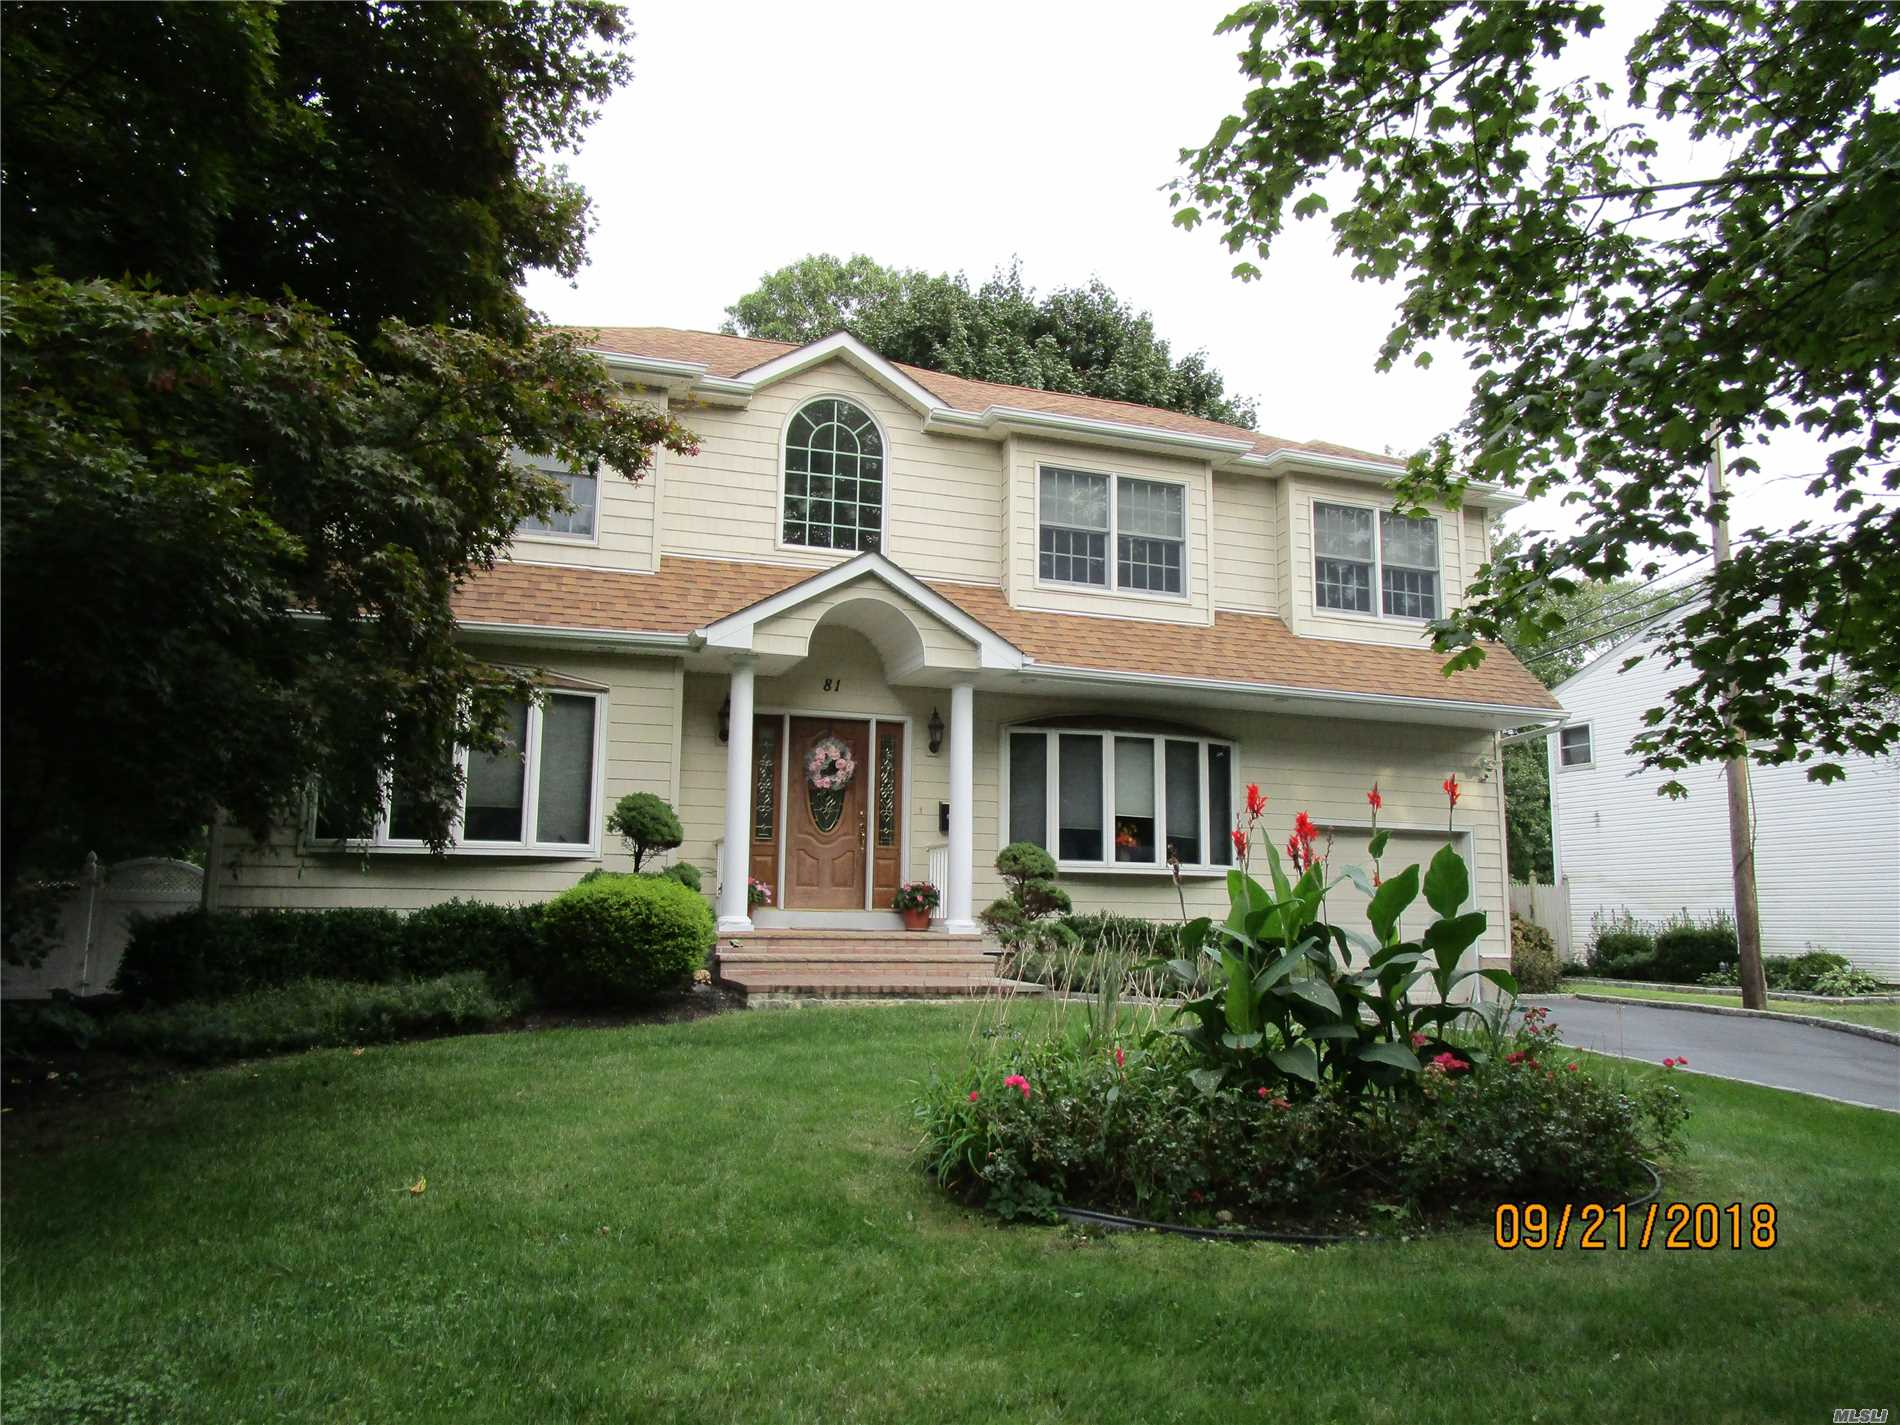 Beautiful 2600 + Sq. Ft Colonial Style Home With Huge Master Suite (24' X 18' 8) + 2 Bedroom And 4 Full Baths. Second Story Was Built In 2005. , Closet Still On Main Level, Possible 4th Bedroom. Open Floor Plan, Updated Windows, Large Foyer, Entertainers Dream Home. Kitchen Offers Granite Counters, Ss Appliances (New Stove And Fridge) And Breakfast Nook. Virtual Tour And Floor Plan Attached. Seller Has Applied For Star (Approx Savings Of $1100-$1200).